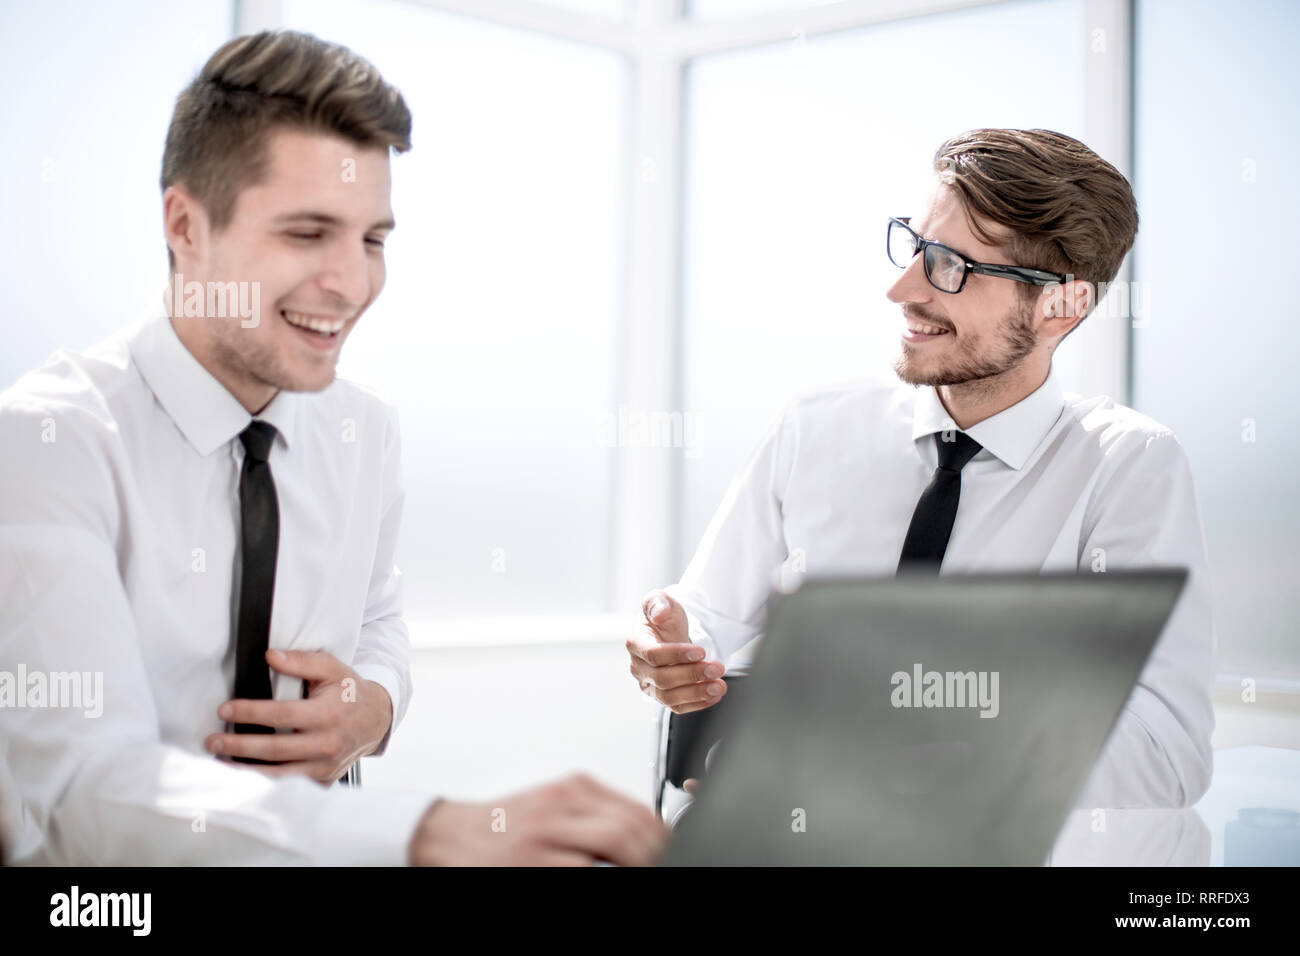 Working process in a modern office - Stock Image